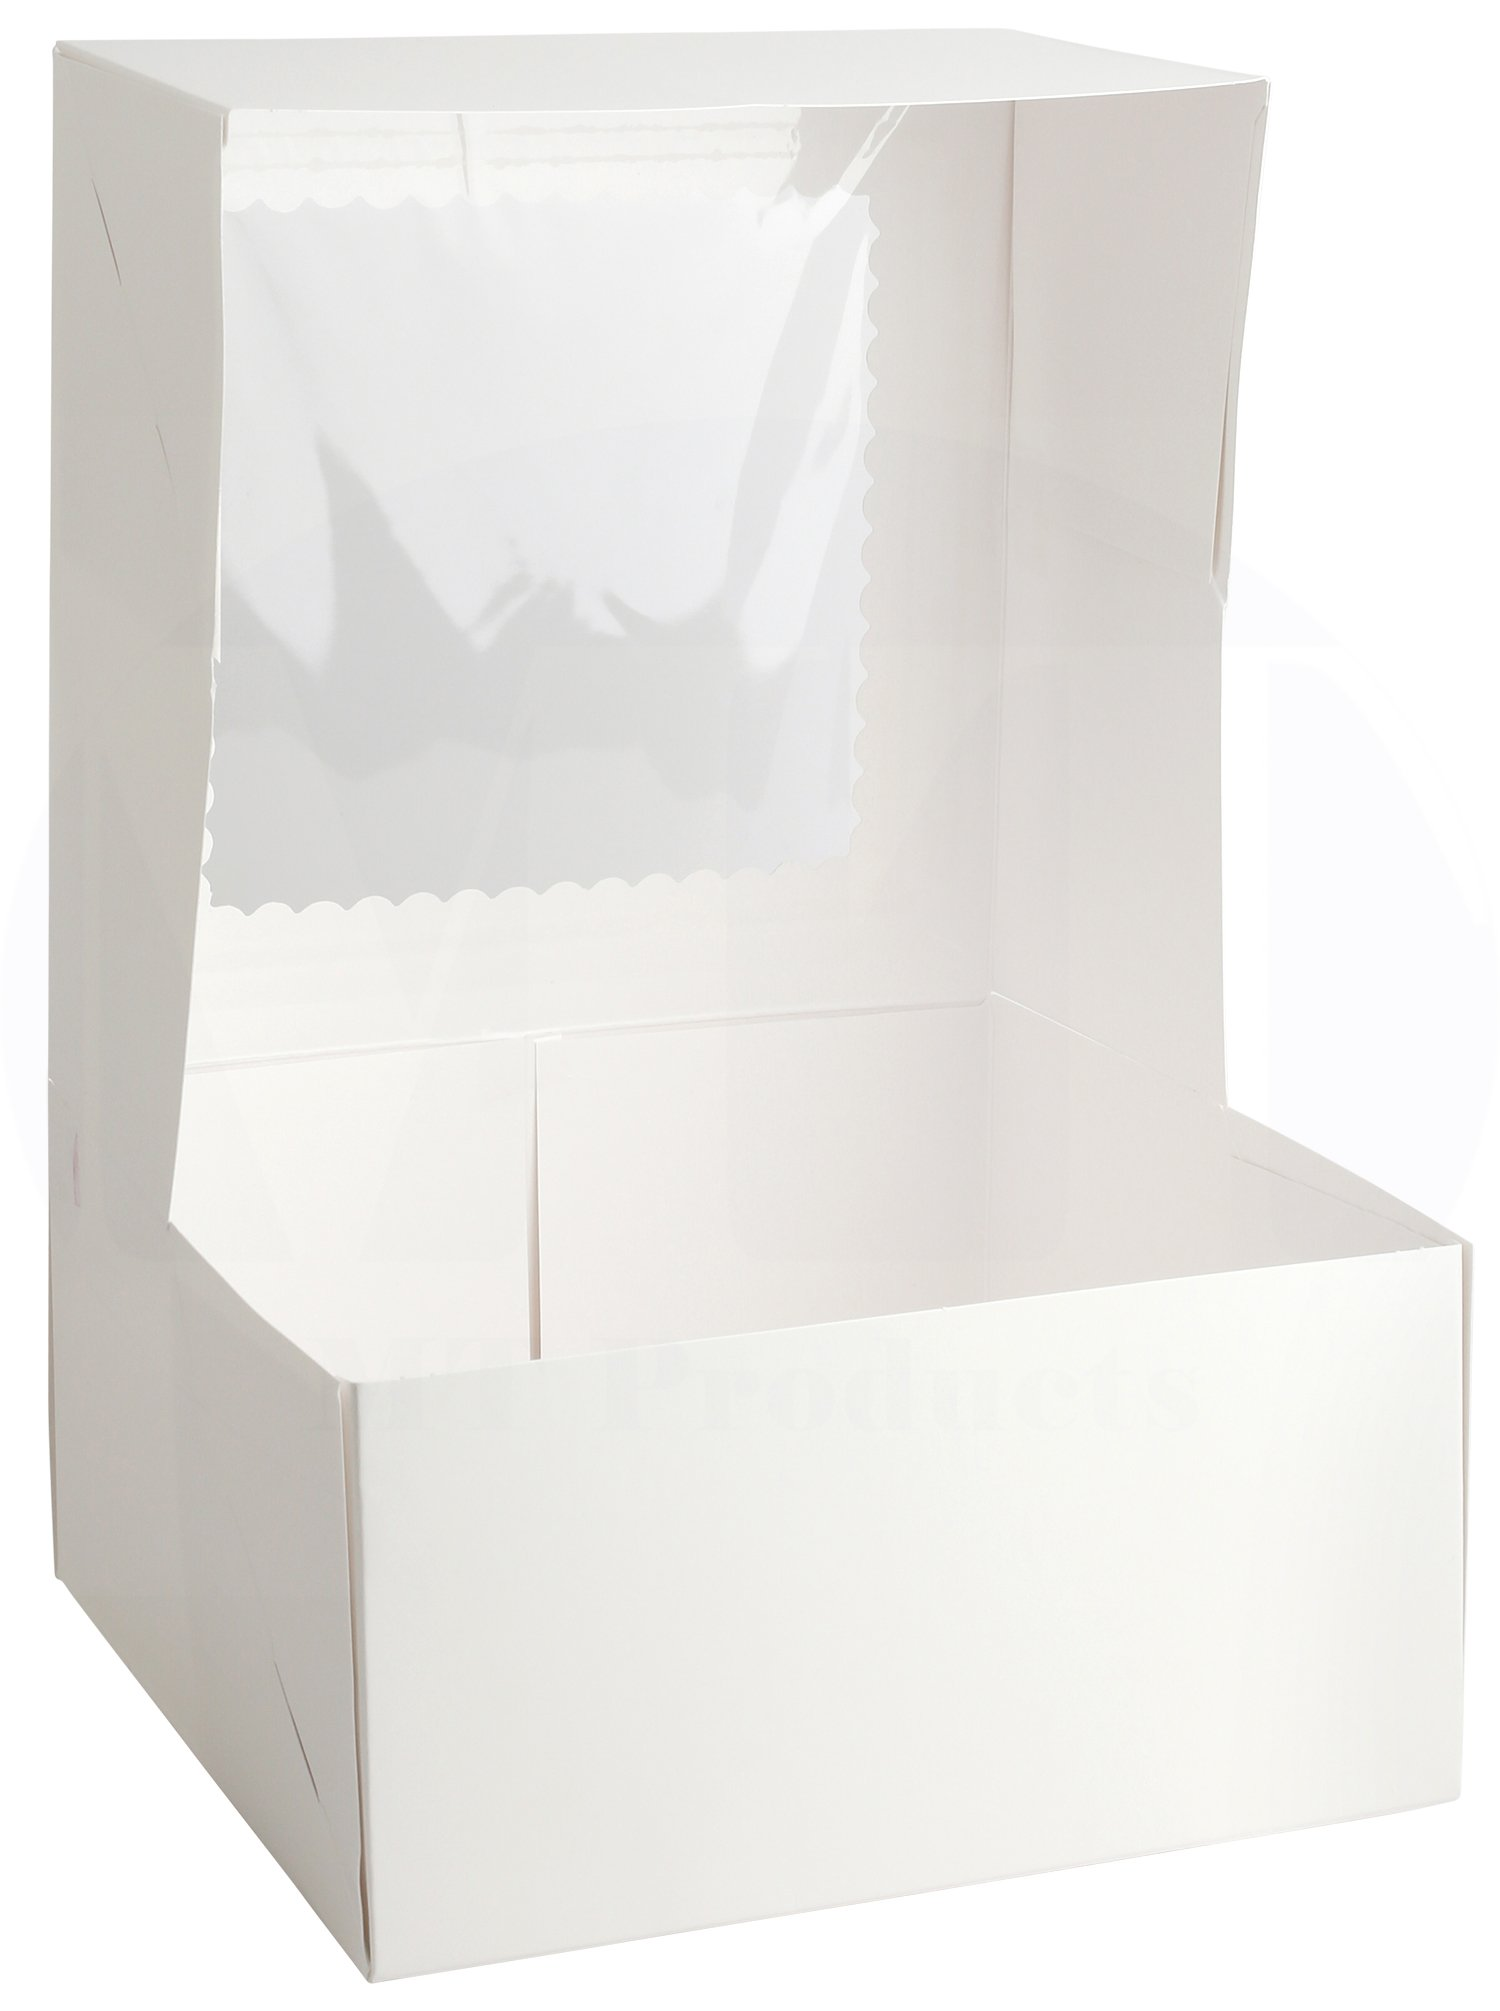 8 in Length x 8 in Width x 5 in Height White Kraft Paperboard Auto-Popup Rounded Design Window Pie/Bakery Box by MT Products (Pack of 15) by MT Products (Image #3)